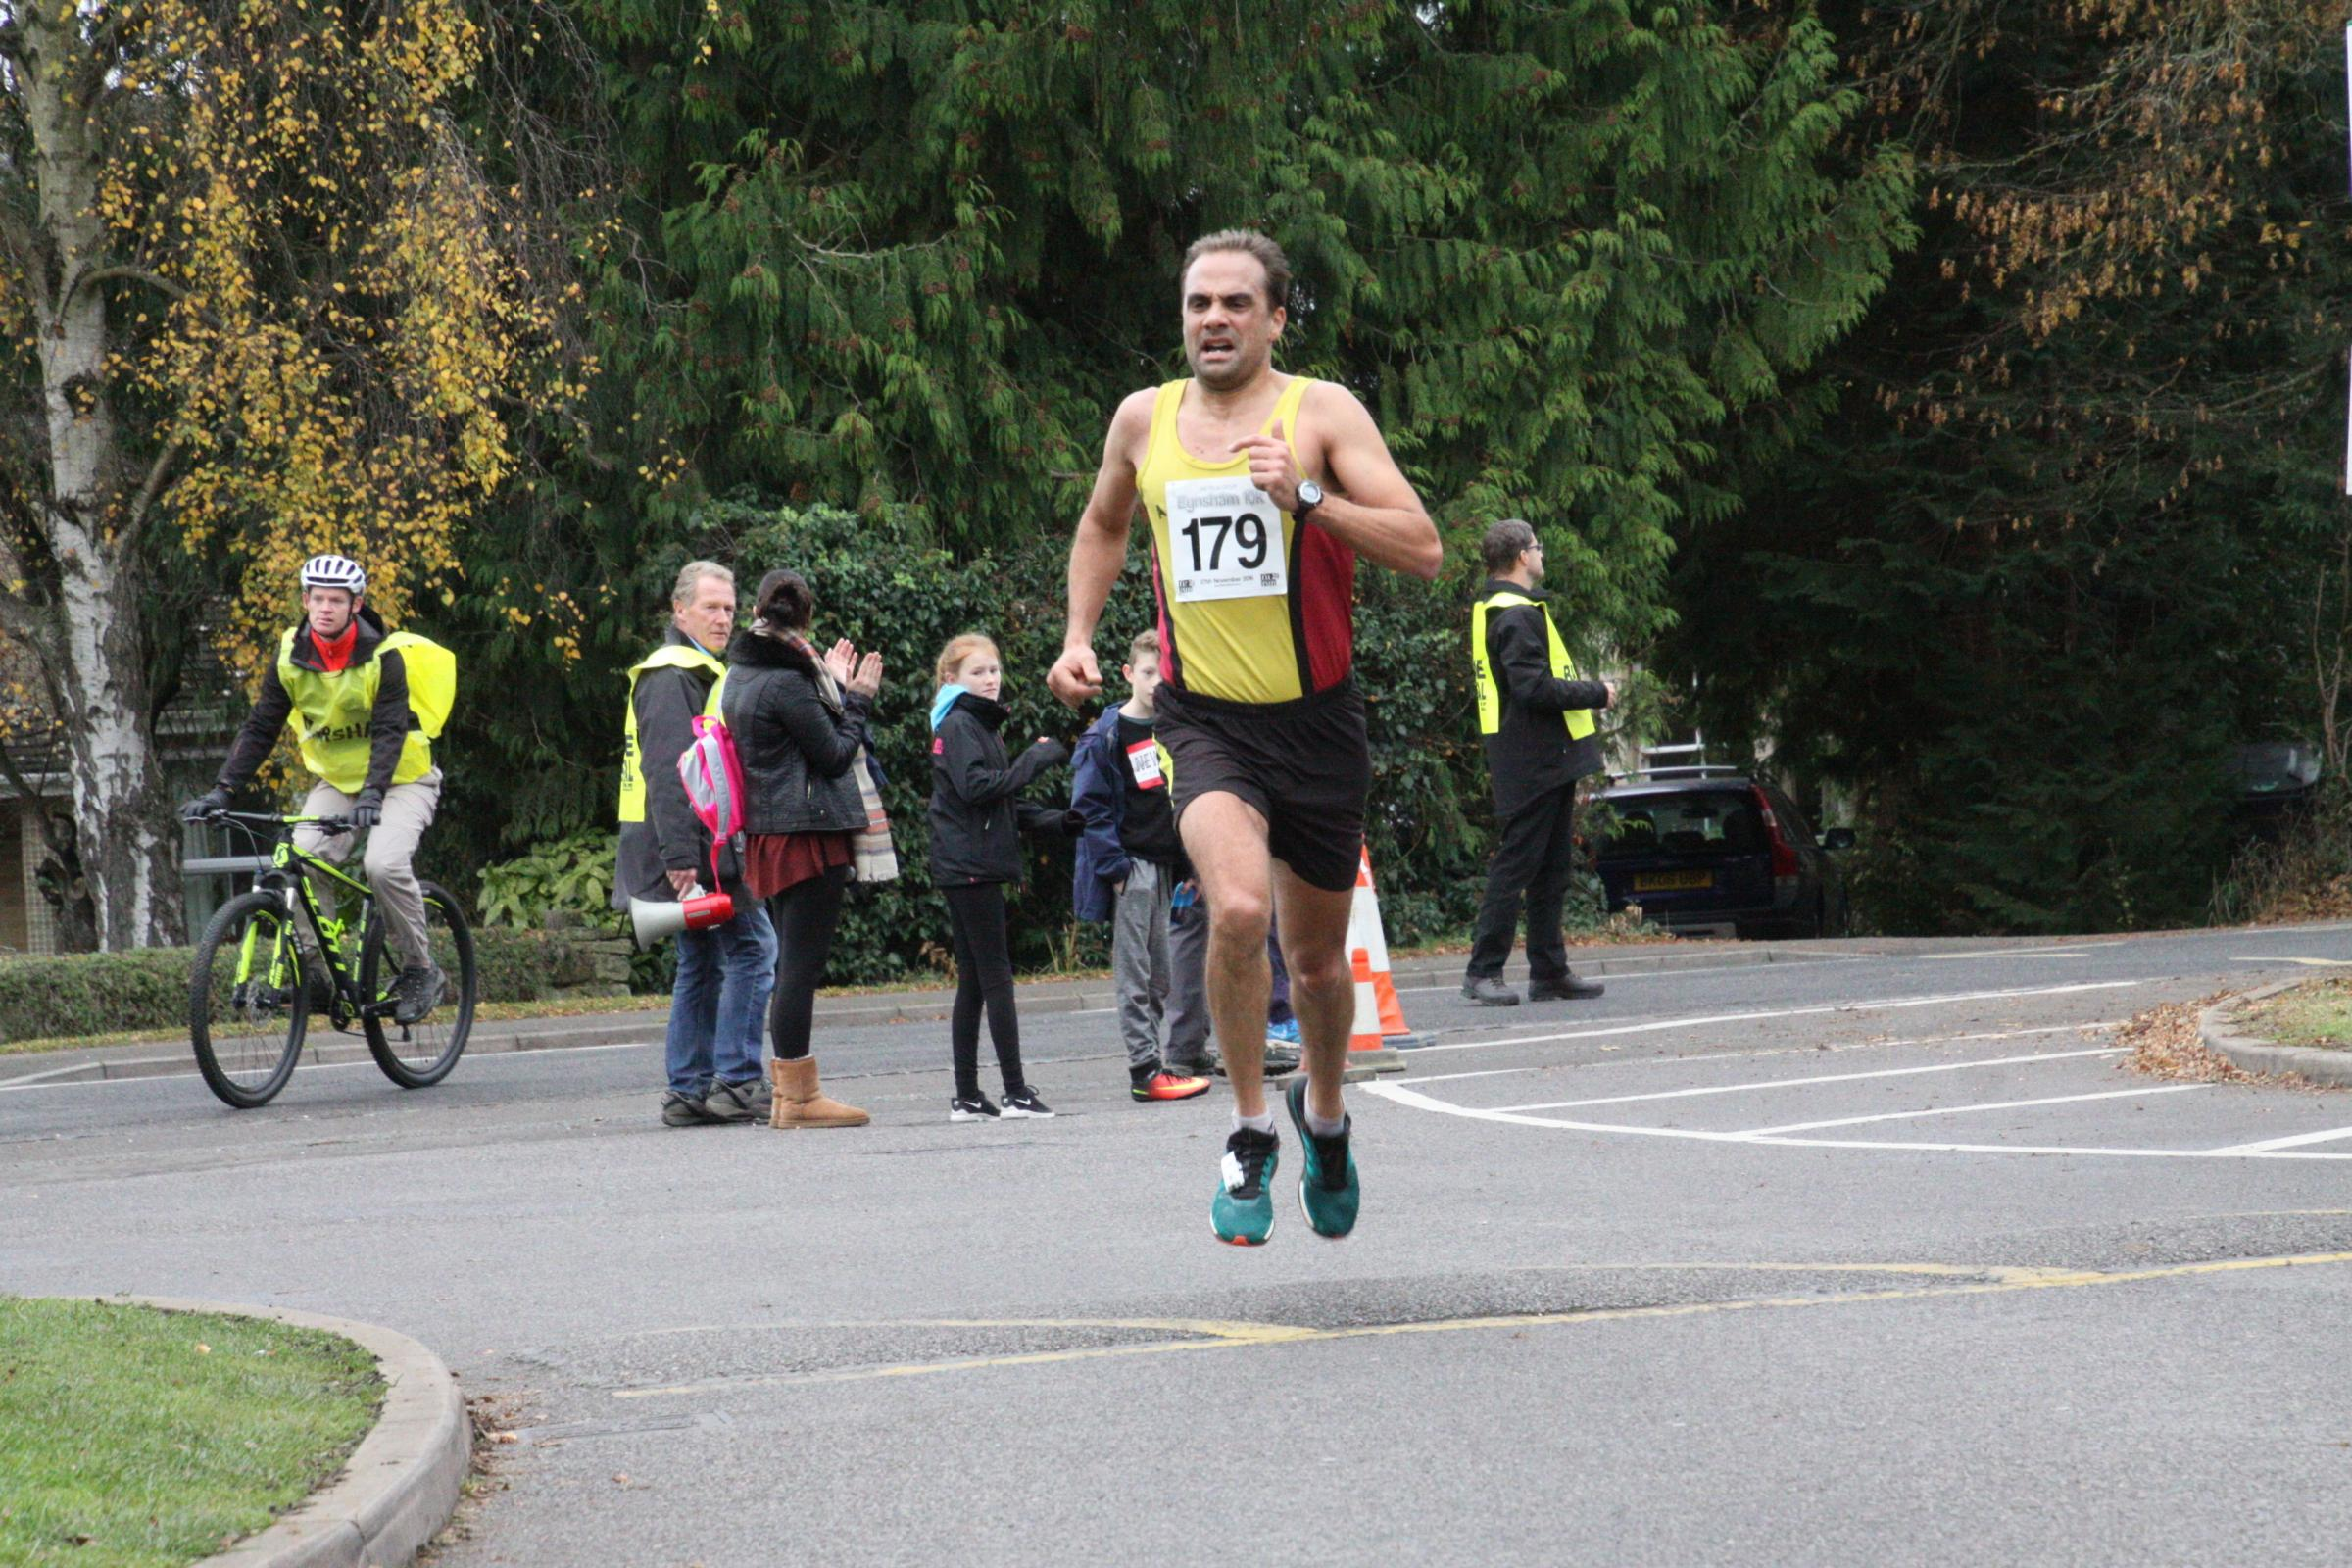 Paul Fernandez at the Eynsham 10k Picture: Barry Cornelius